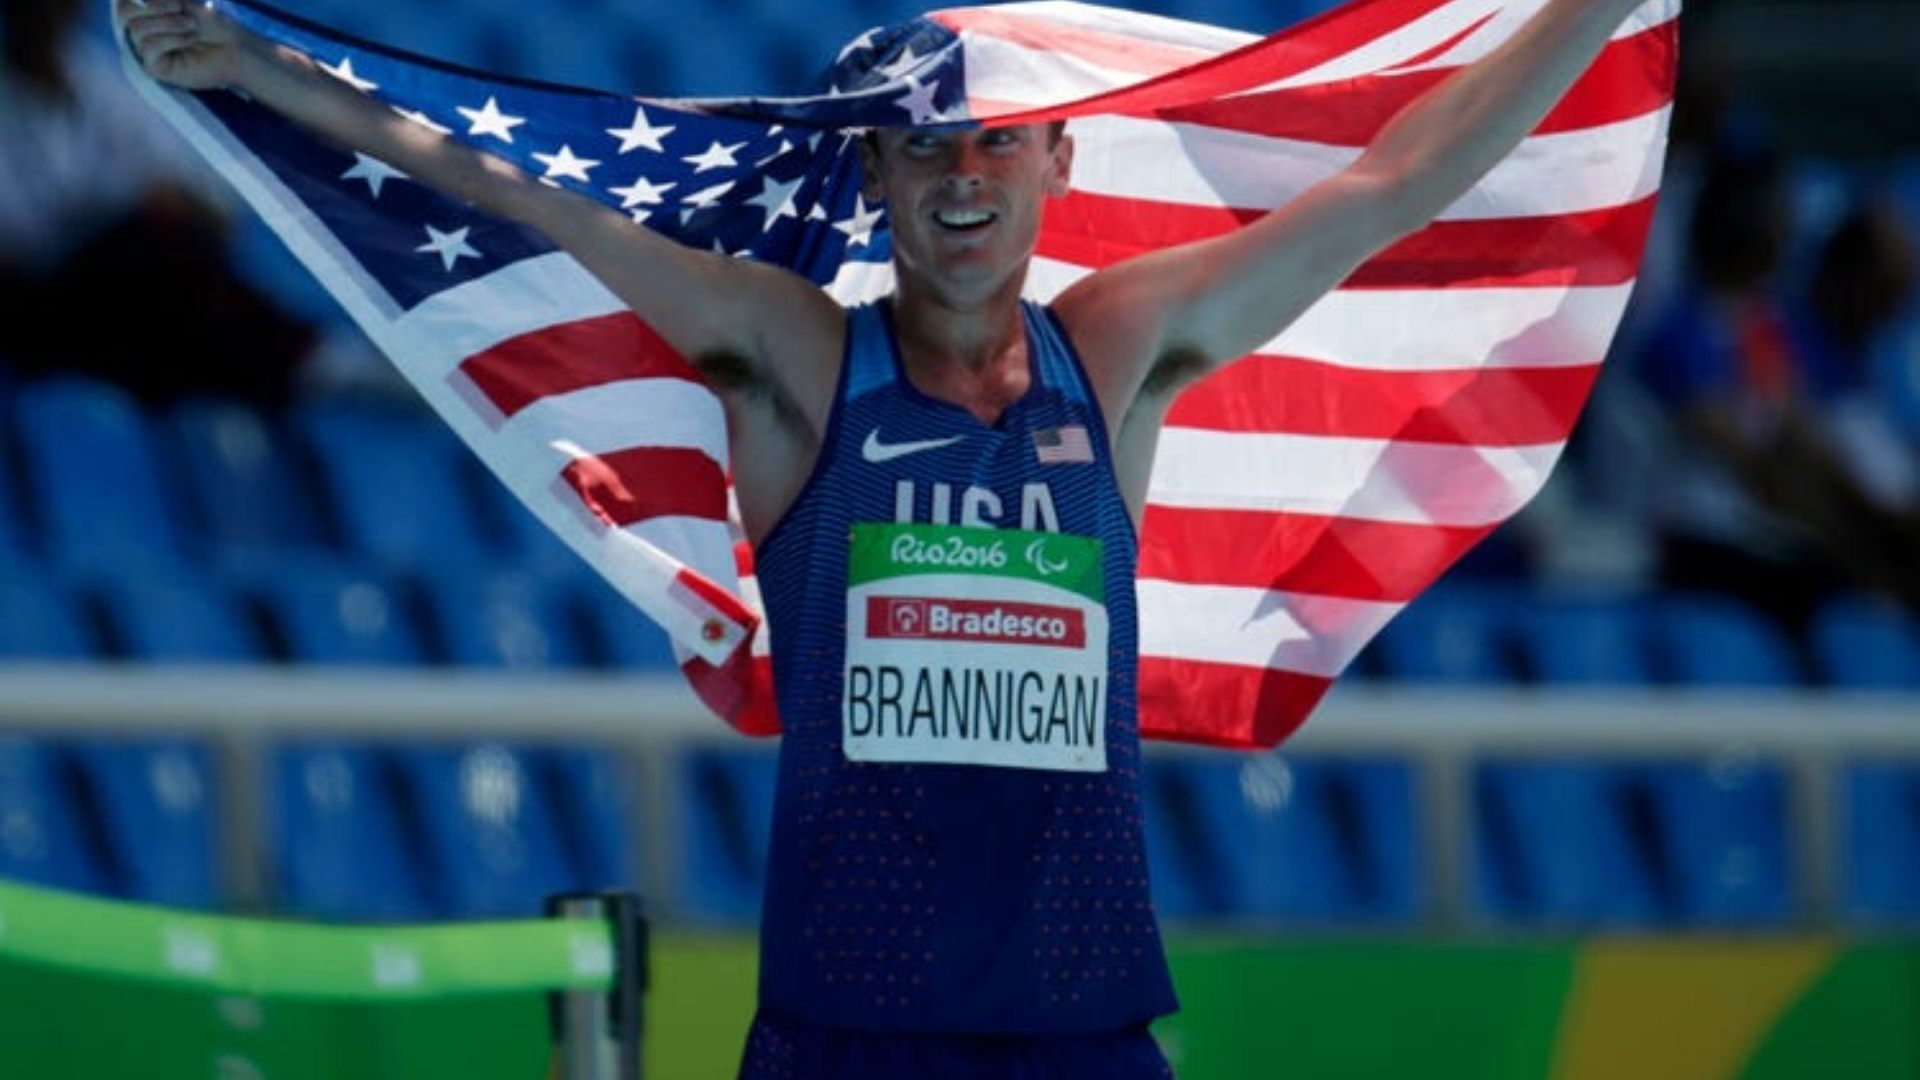 Mikey Brannigan Paralympic Gold